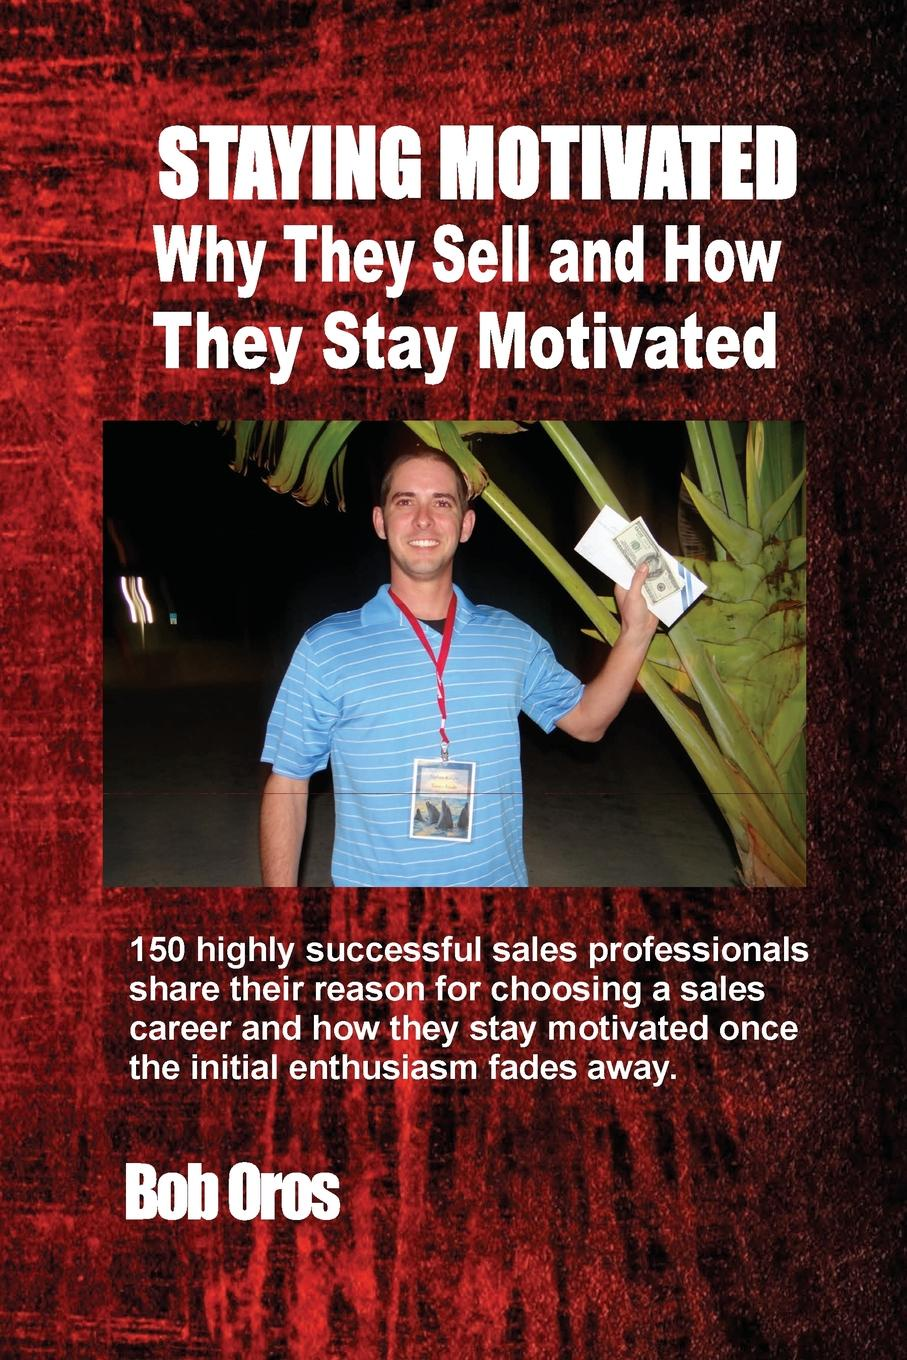 Bob Oros Staying Motivated. Why They Sell and How Stay Motivated